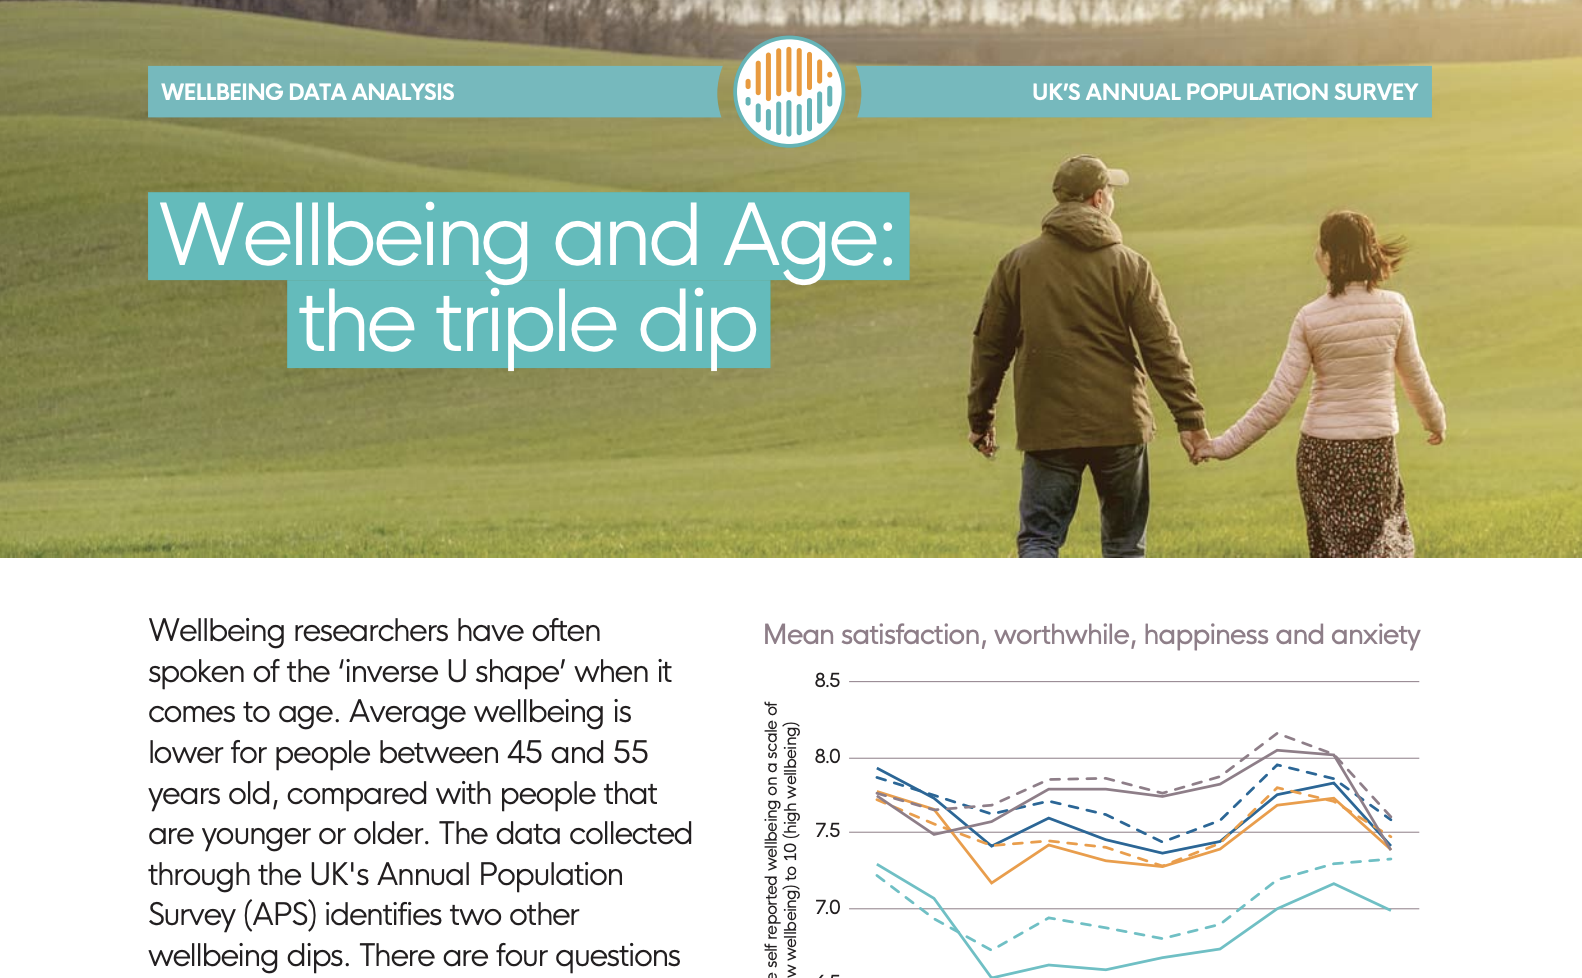 Wellbeing and age: the triple dip